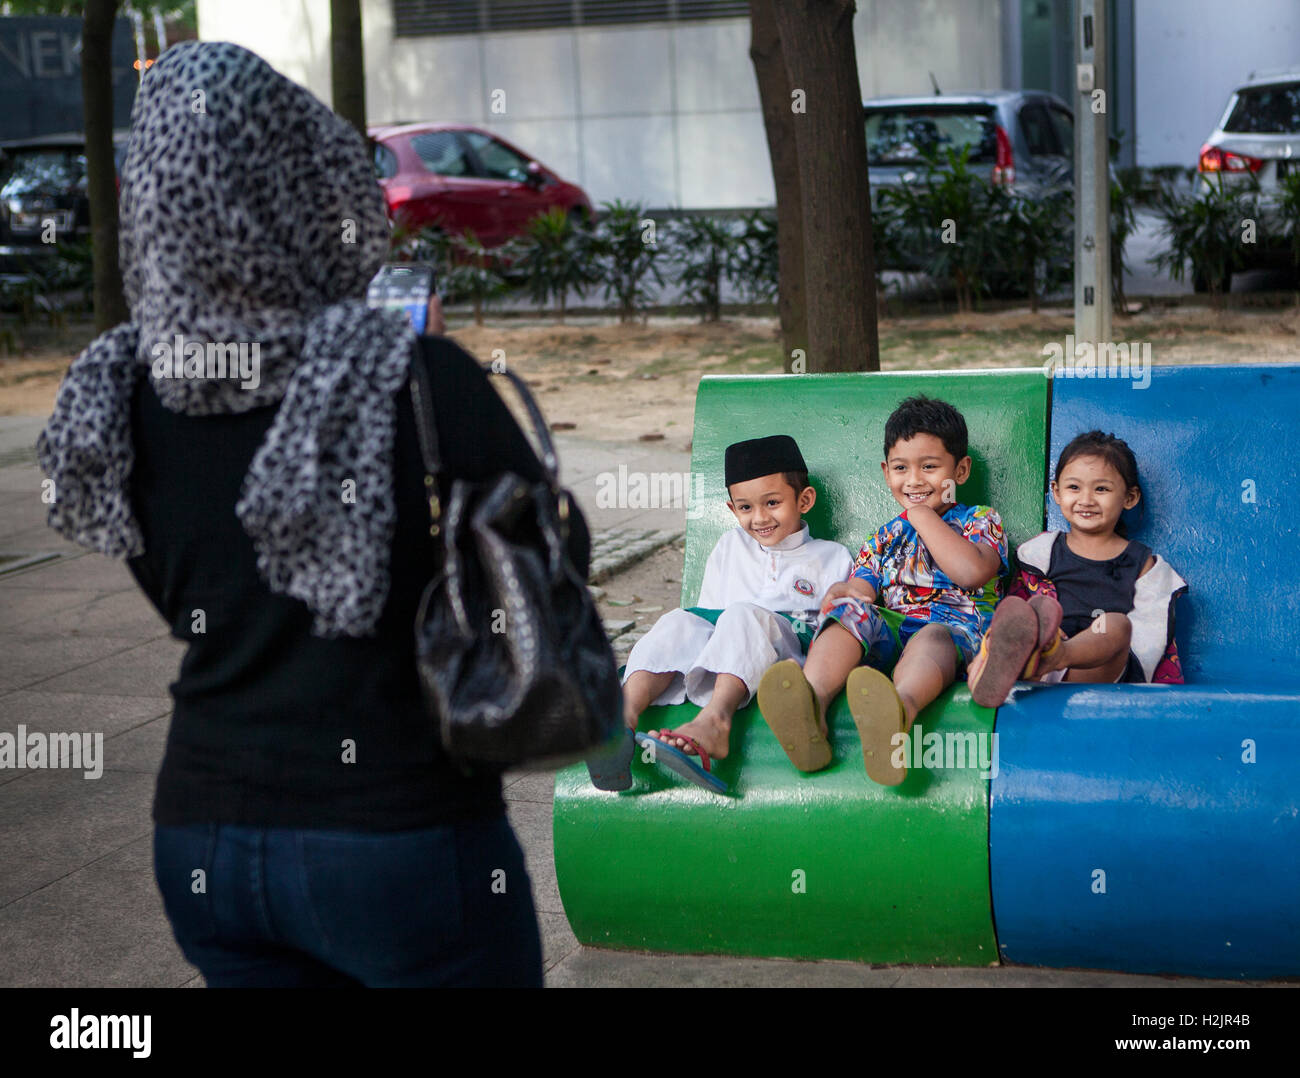 Happy Muslim children sit on a park bench while their mother takes their picture in Kuala Lumpur, Malaysia. - Stock Image